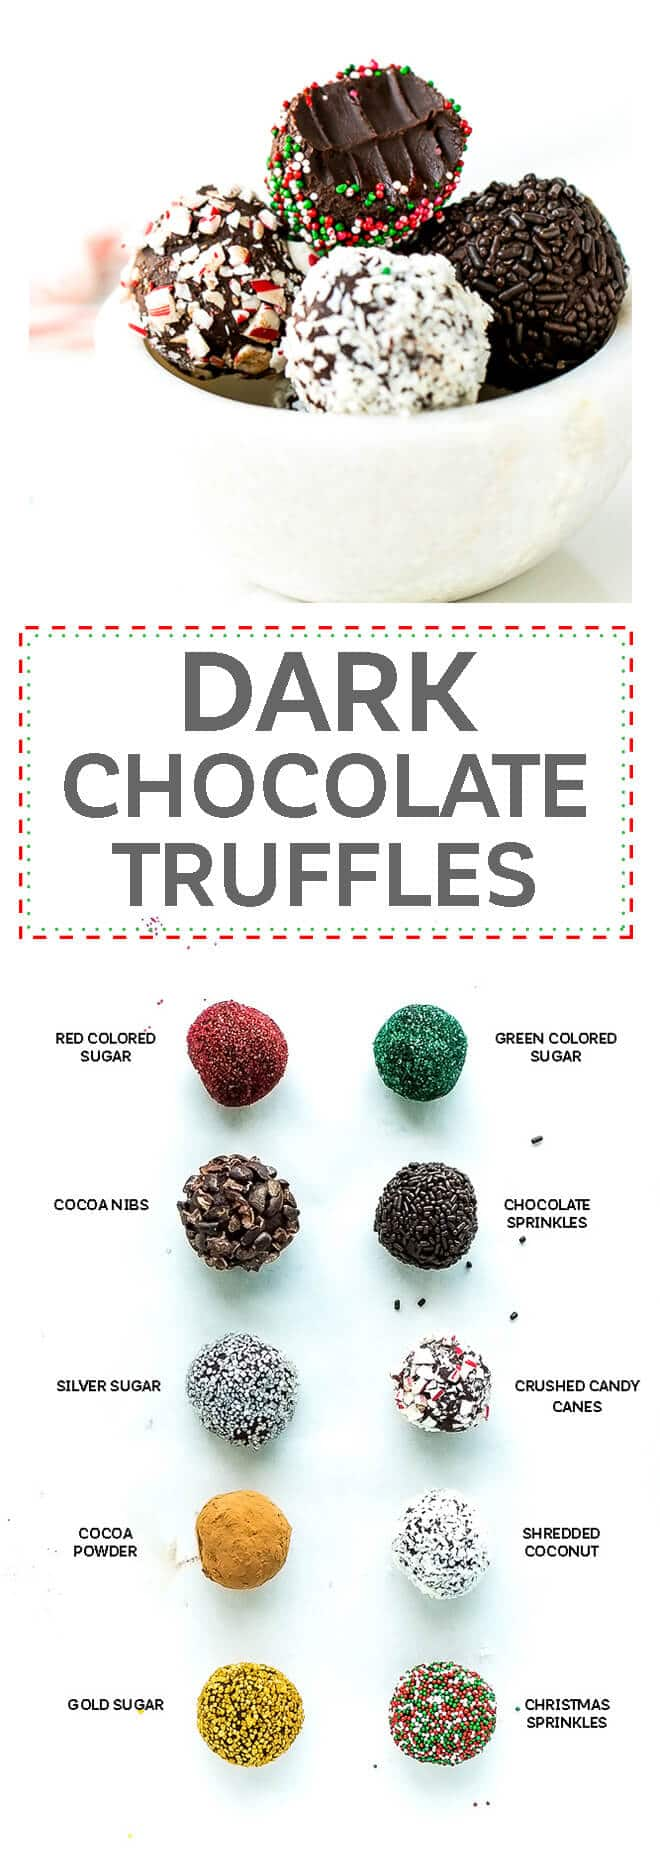 Dark Chocolate Peppermint Truffles Recipe - just 3 simple ingredients + sprinkles and mint ectract. These truffles are easy to make and perfect for an edible gift around the holidays.